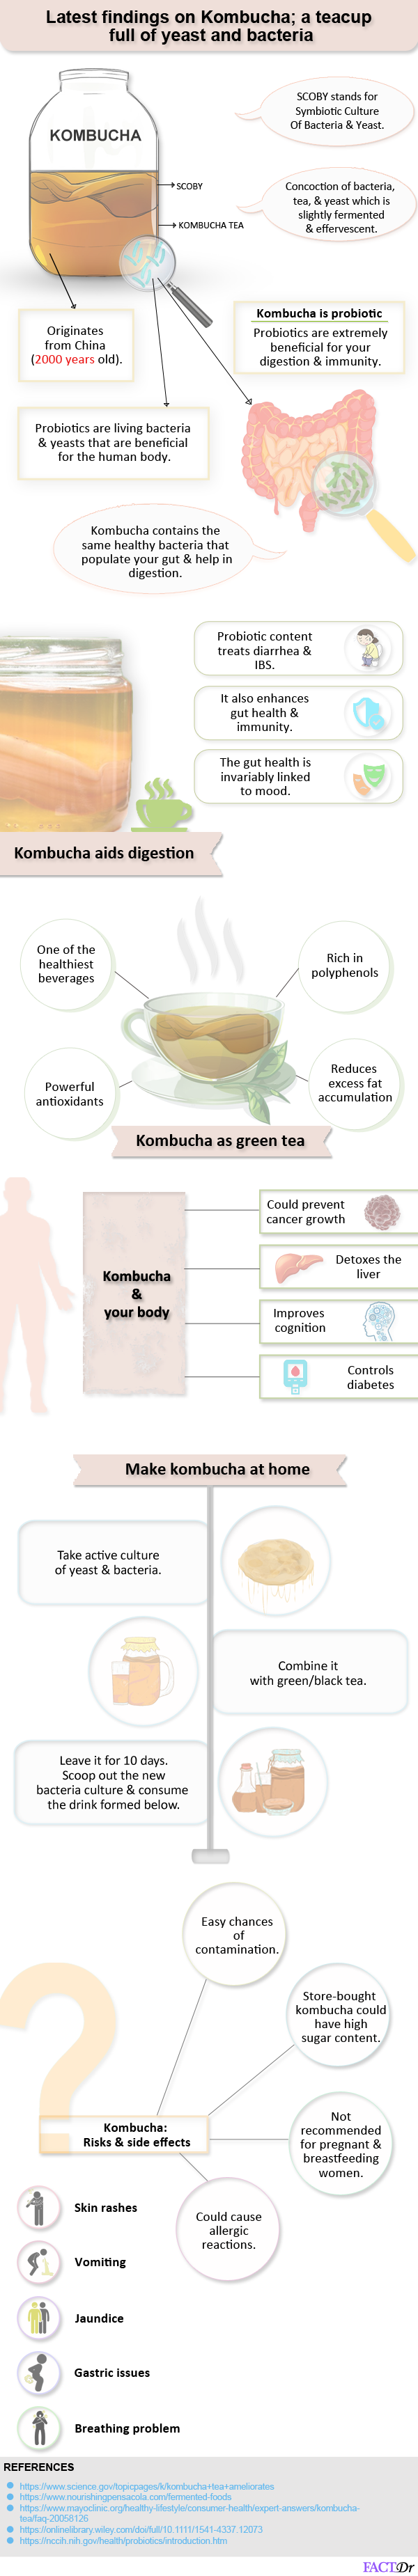 Latest findings on Kombucha; a teacup full of yeast and bacteria